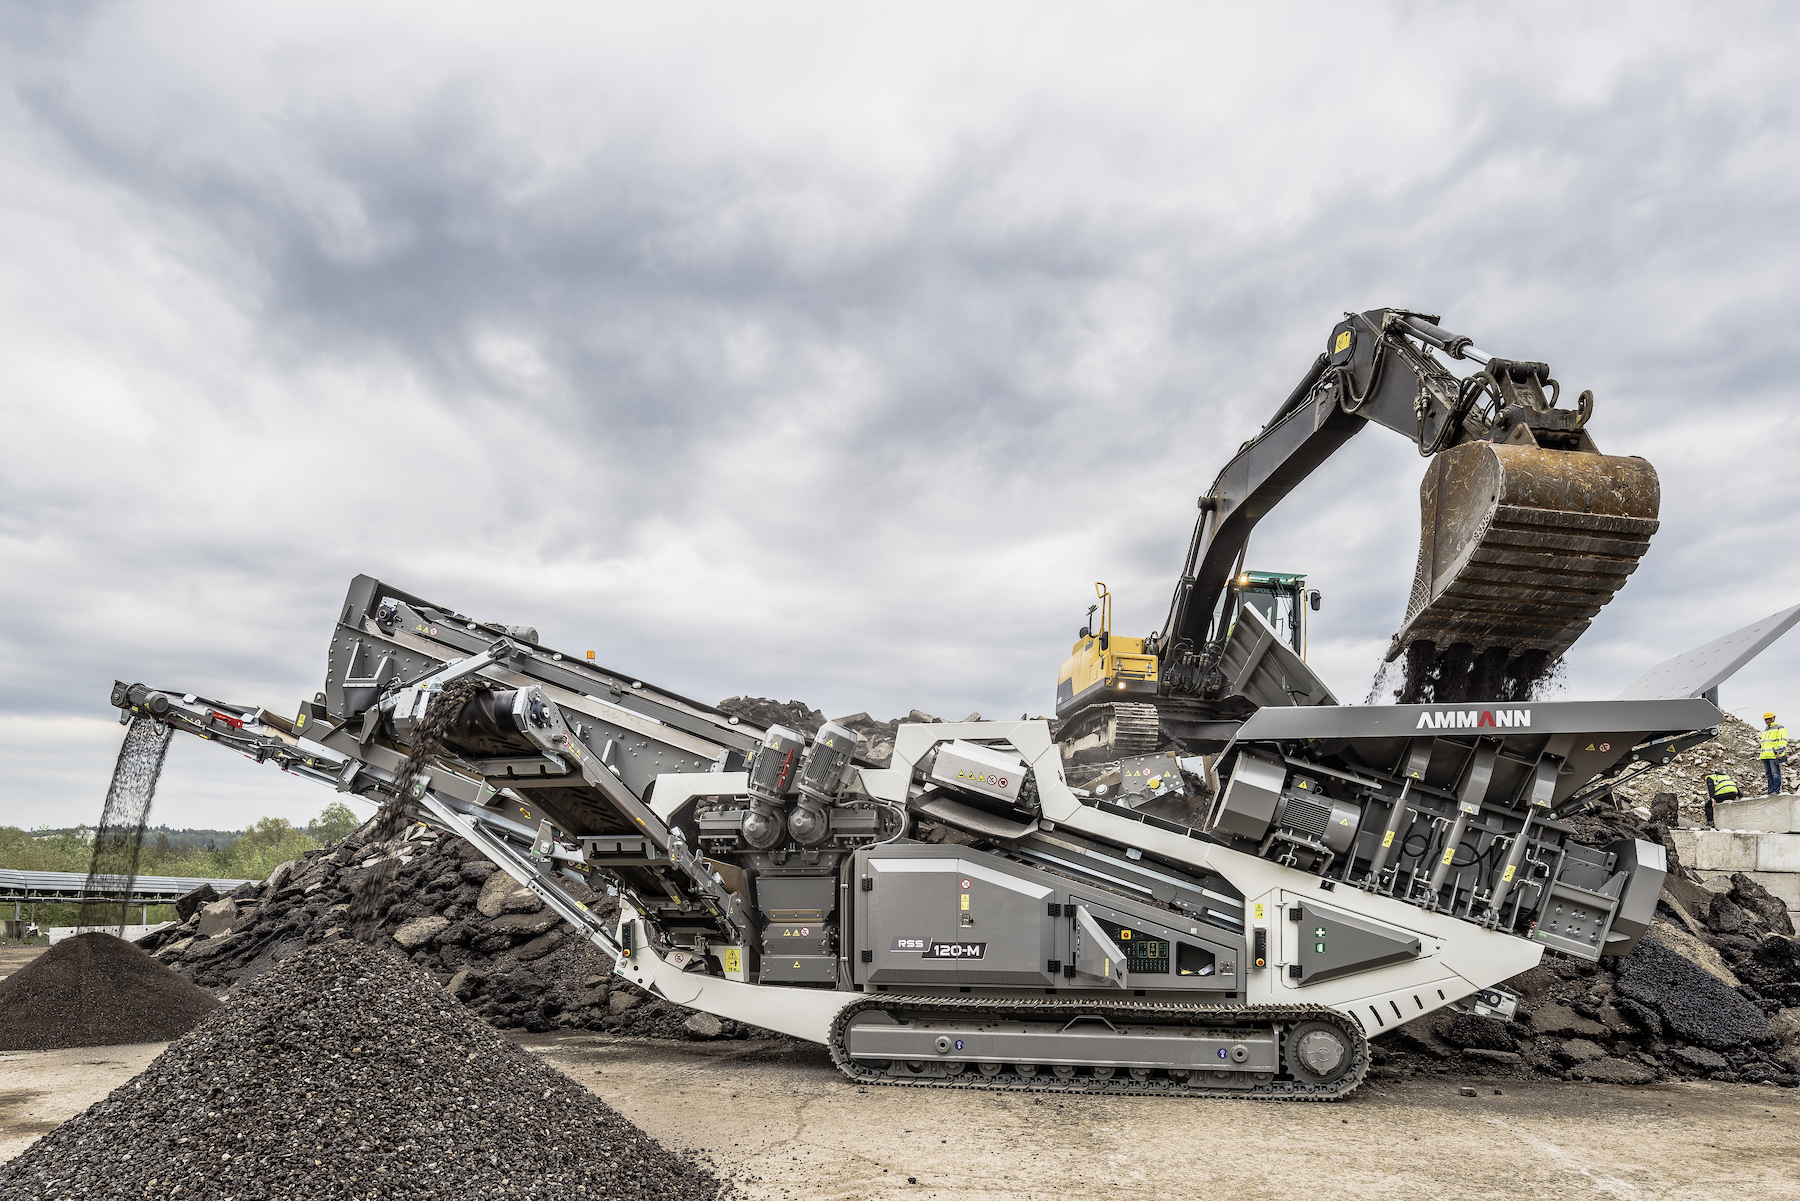 RSS_120-M_Recycling_Shredder_Screener